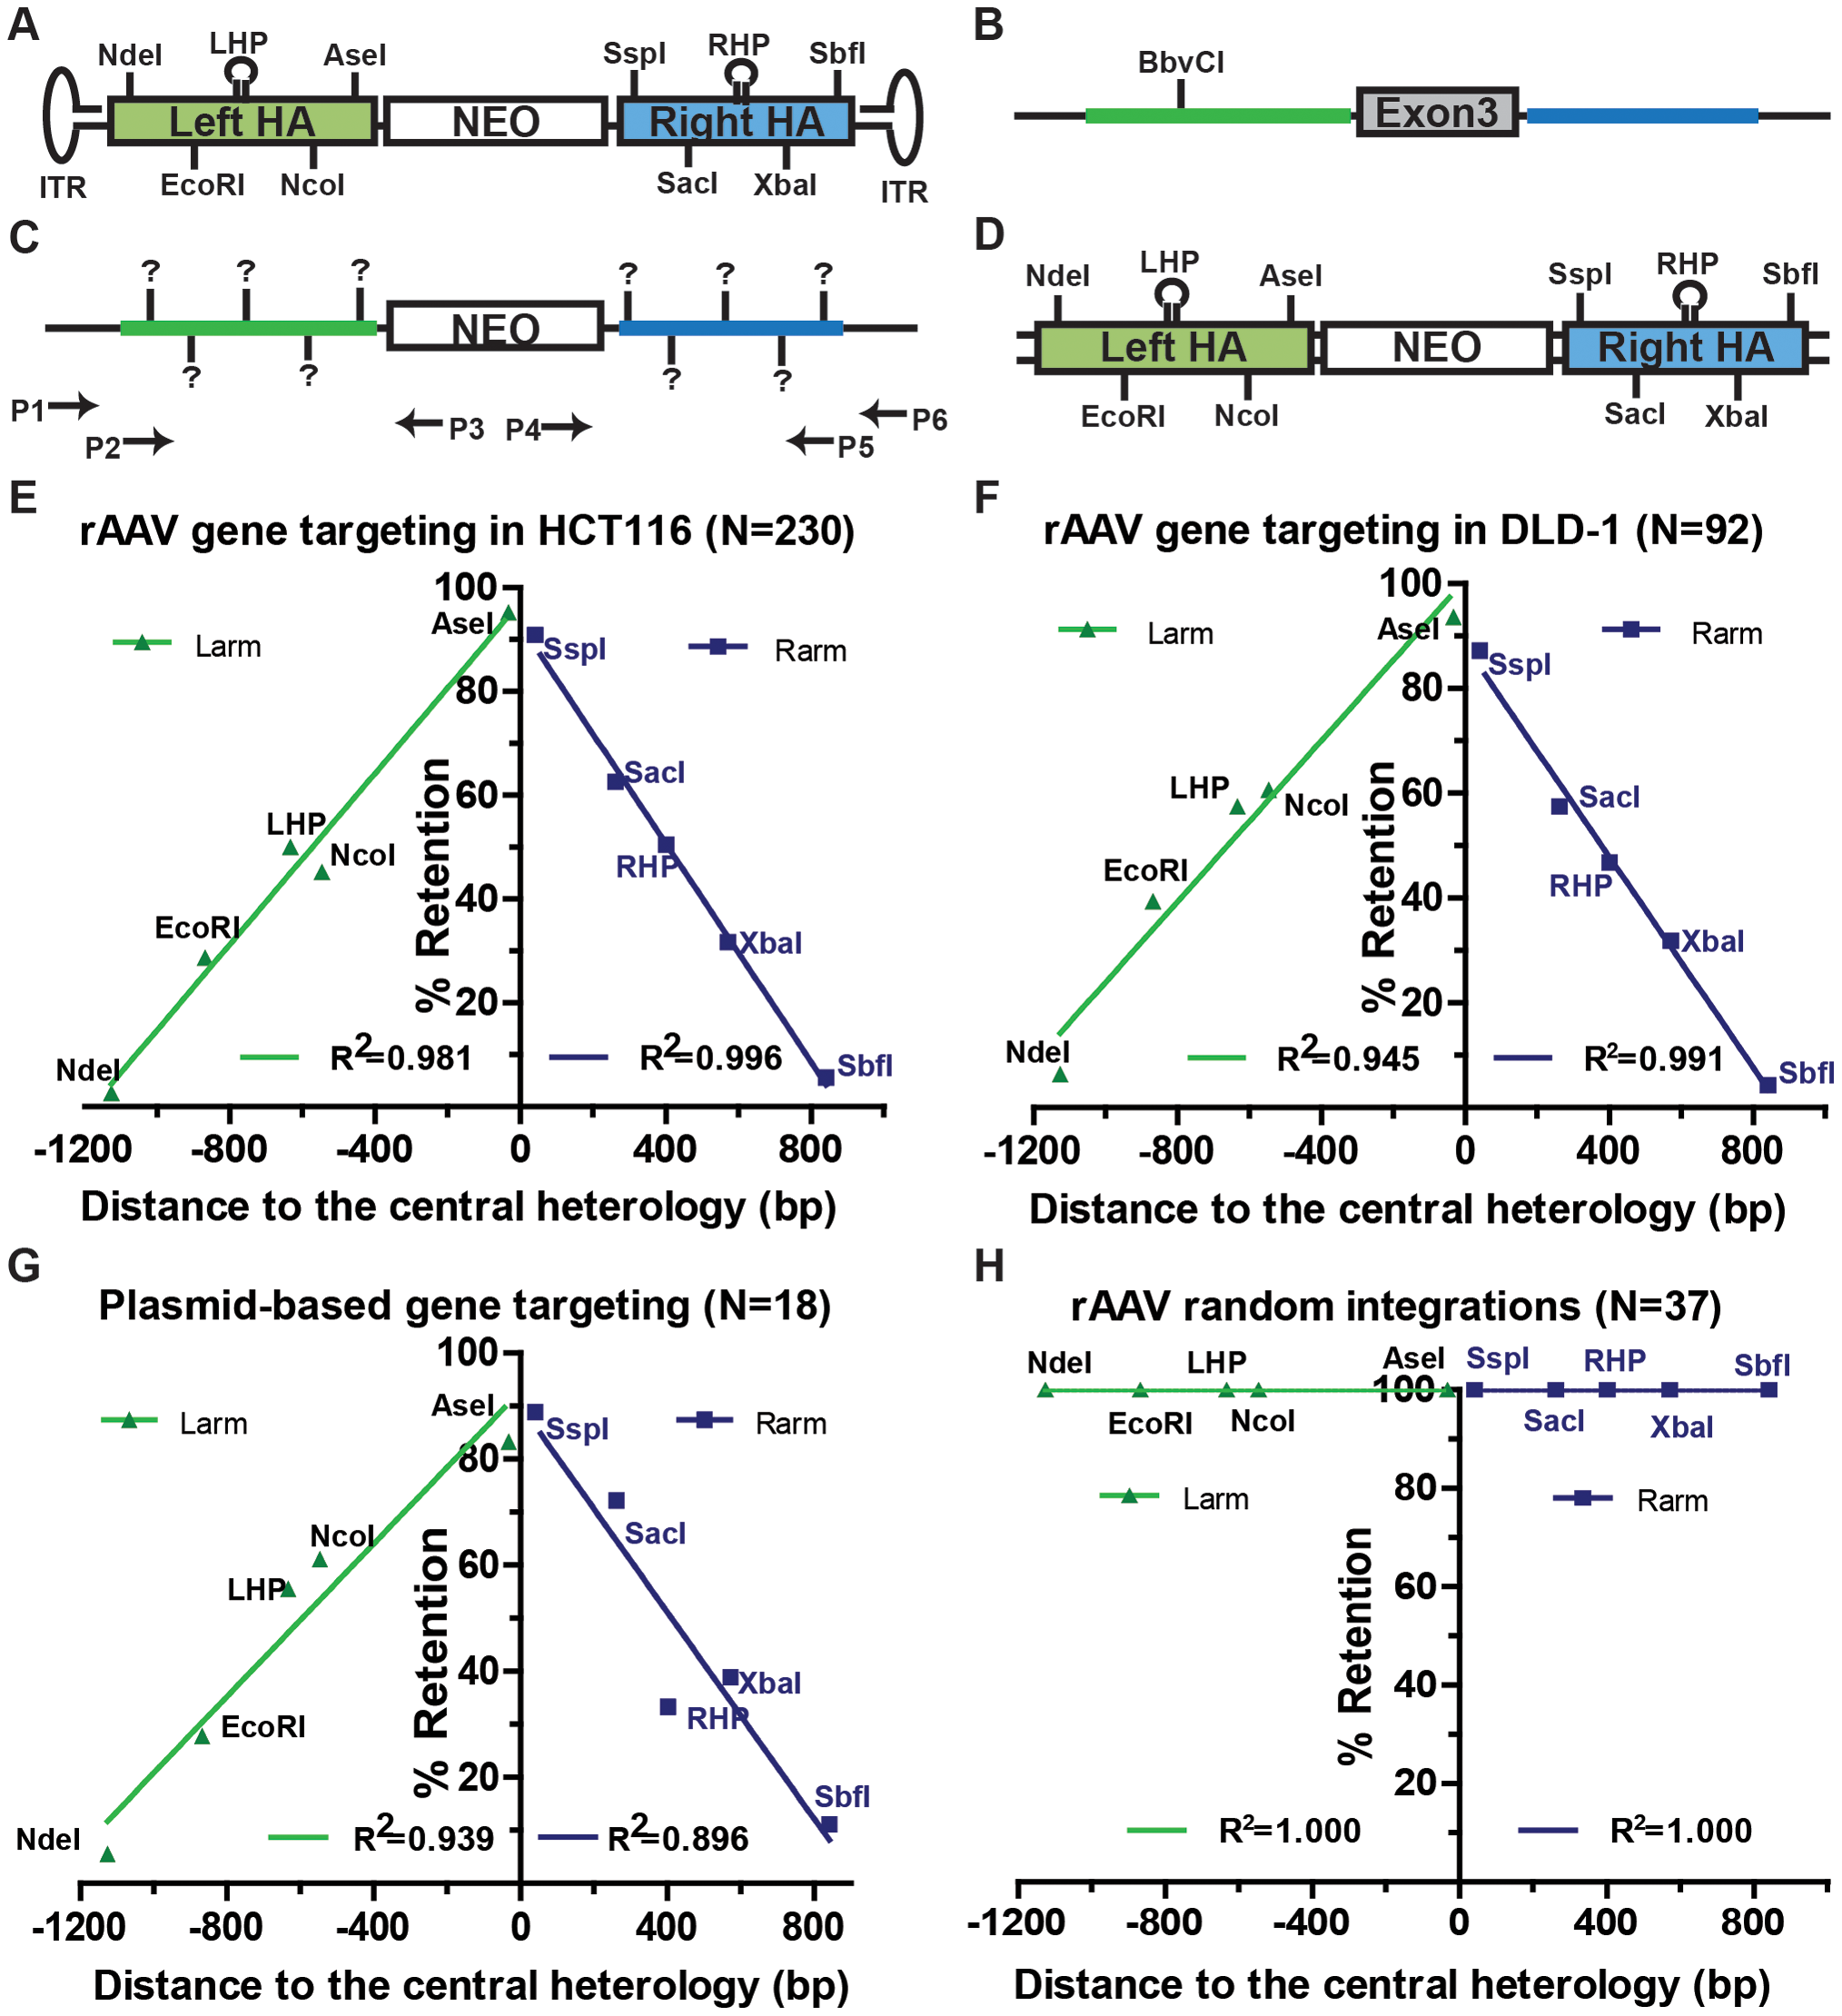 Gene targeting is marked by a characteristic SNP retention signature.